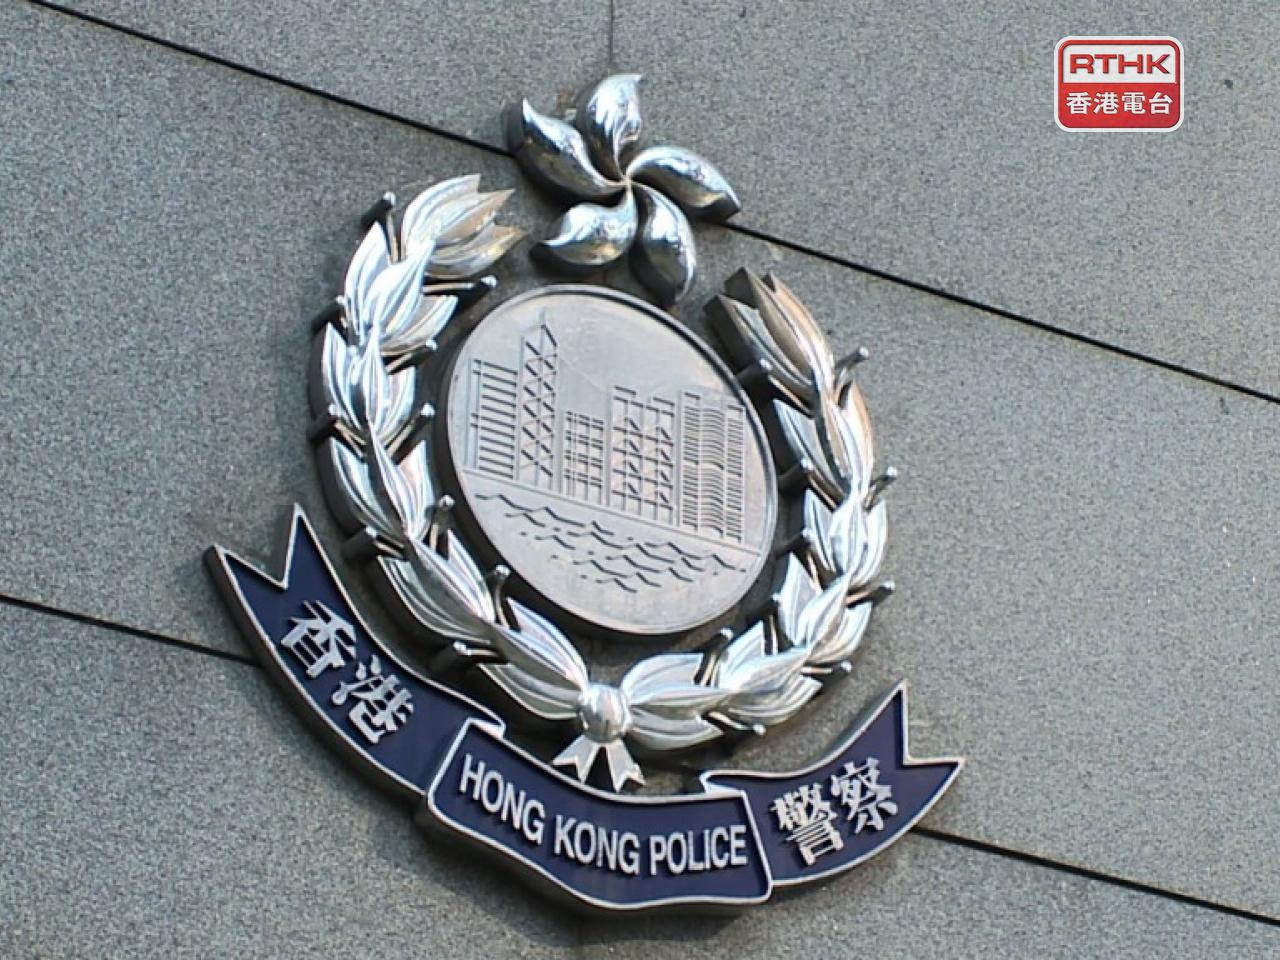 Police say it attaches great importance to its officers' conduct. File photo: RTHK